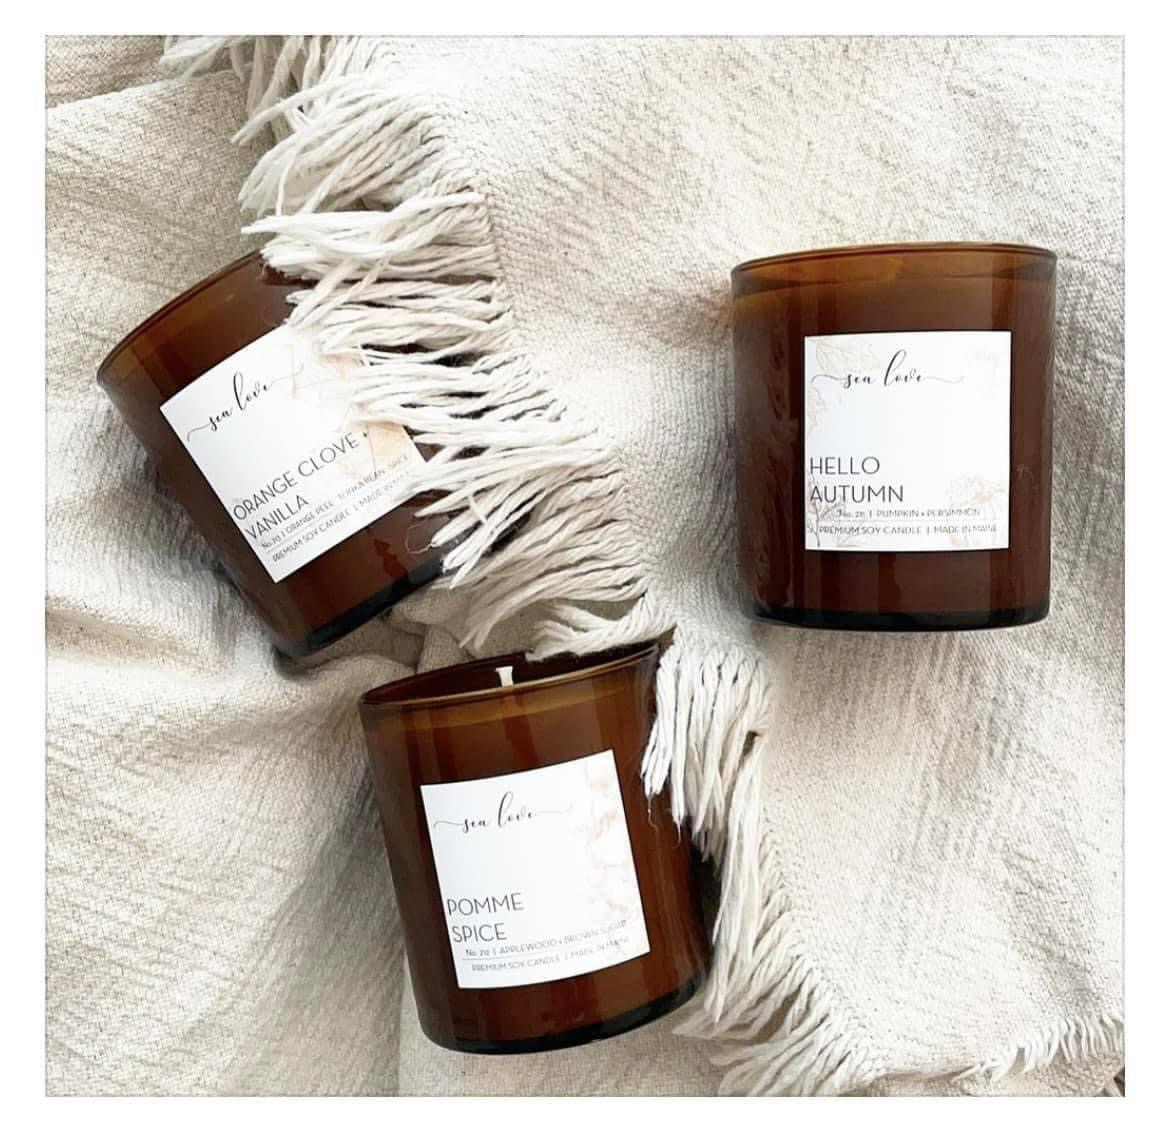 Get 10% off my favorite toxin-free candles using the code HHH10 at checkout!